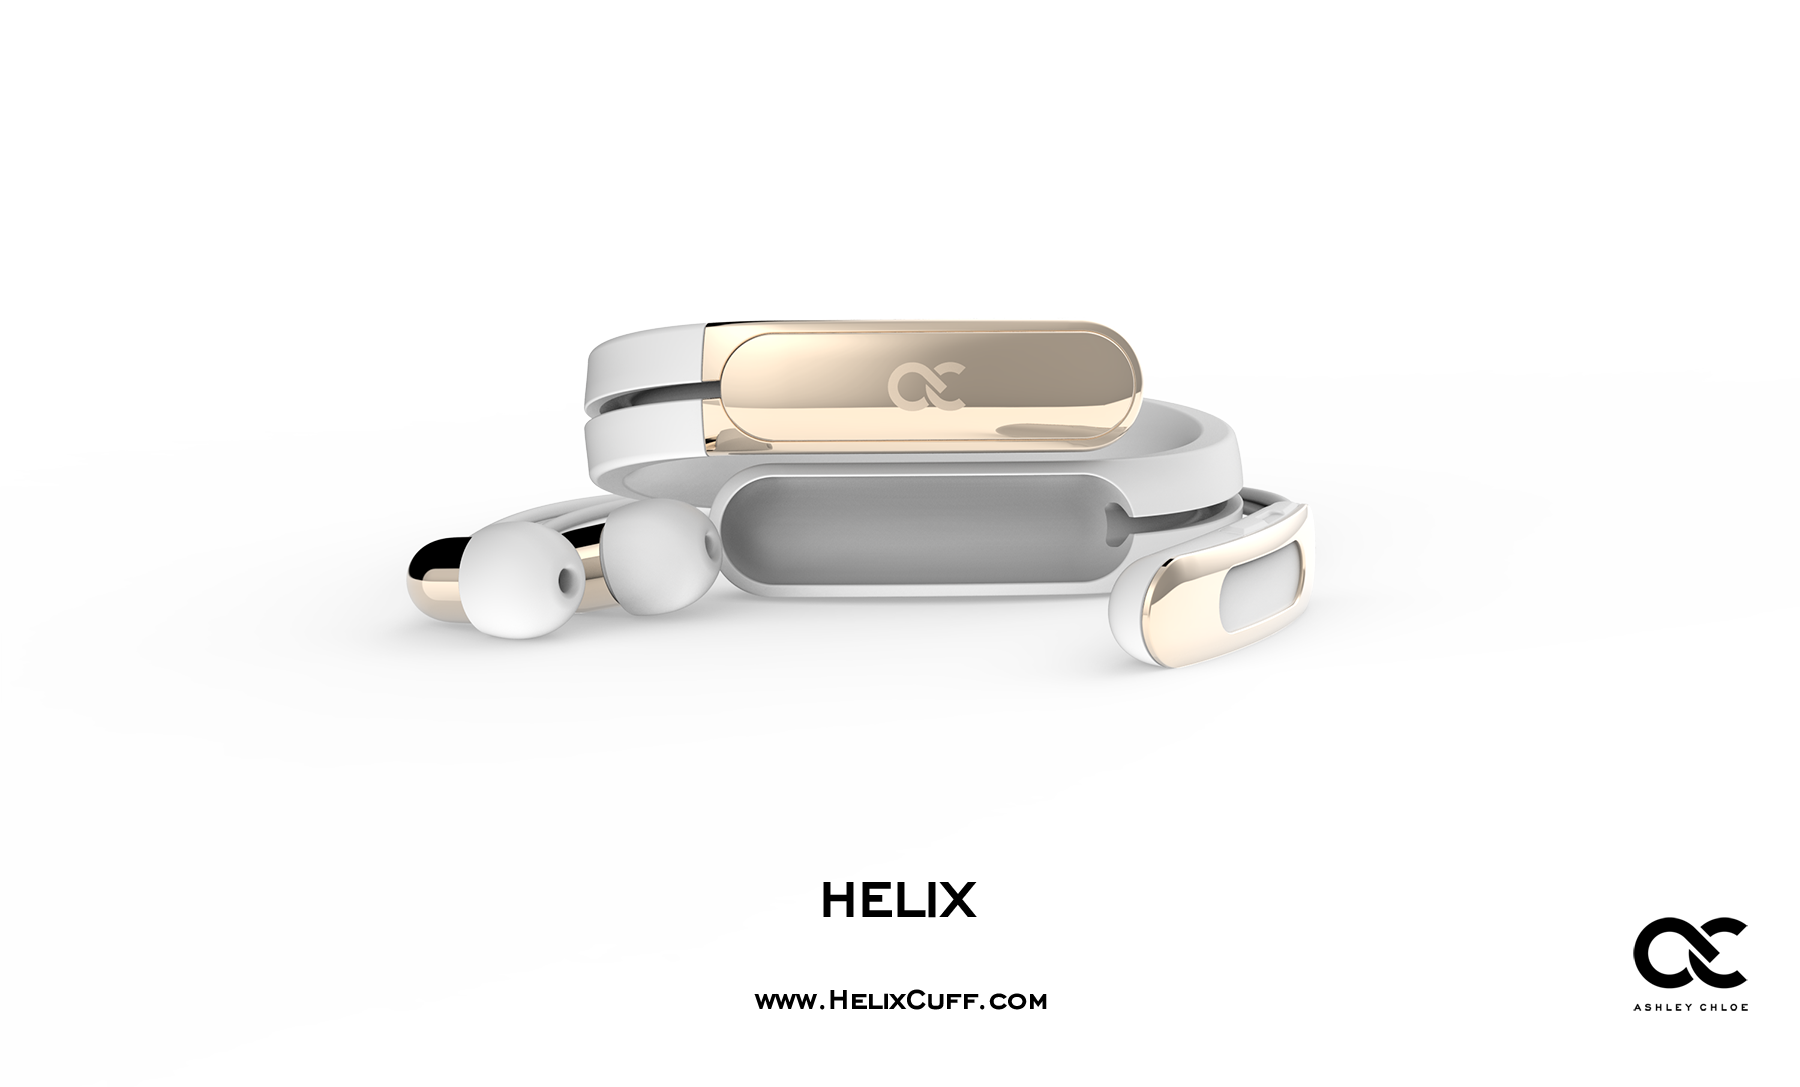 Helix_Cuff_24.png